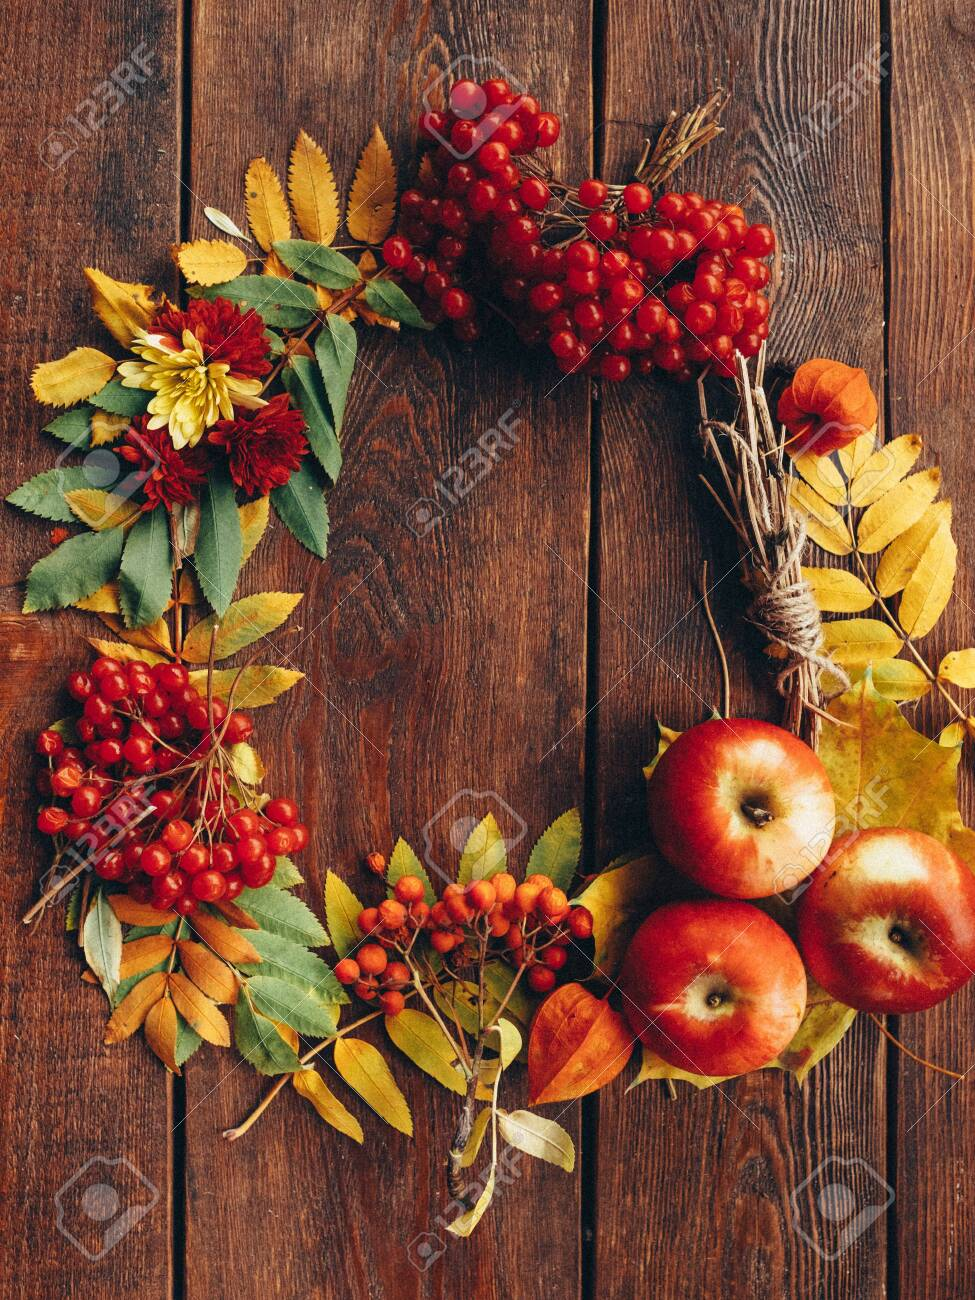 Autumn wrench decor. Colorful fall plants, leaves arranged in round frame on brown wooden background. Copy space. - 125608524